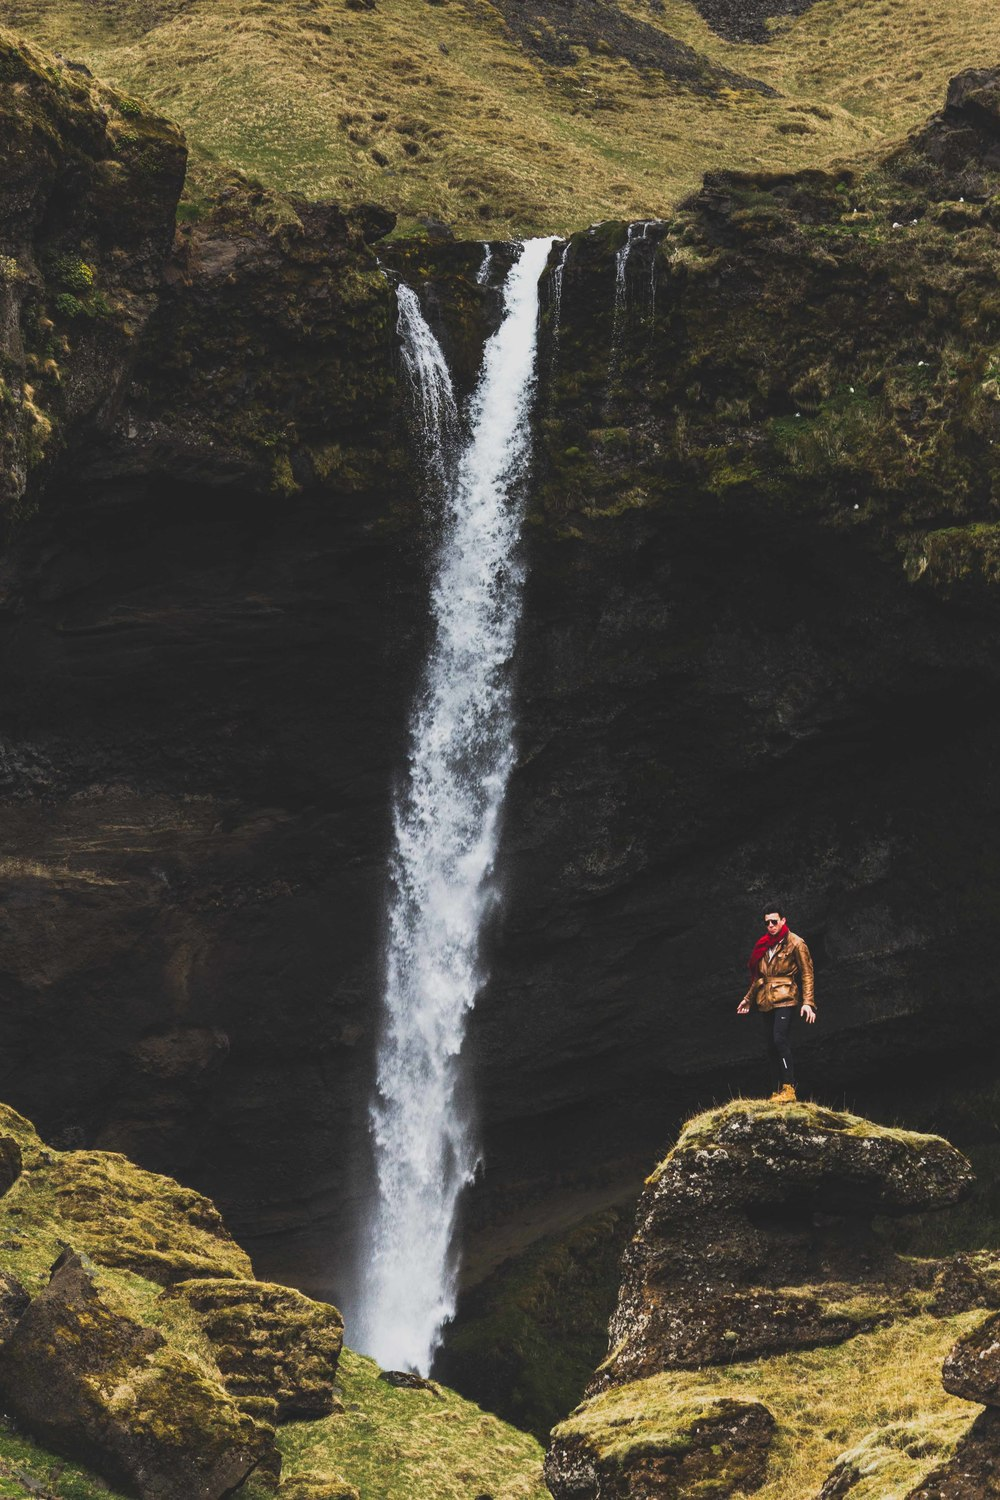 Joe Shutter Bloggar Photographer Iceland Waterfall Photoshoot-15.jpg